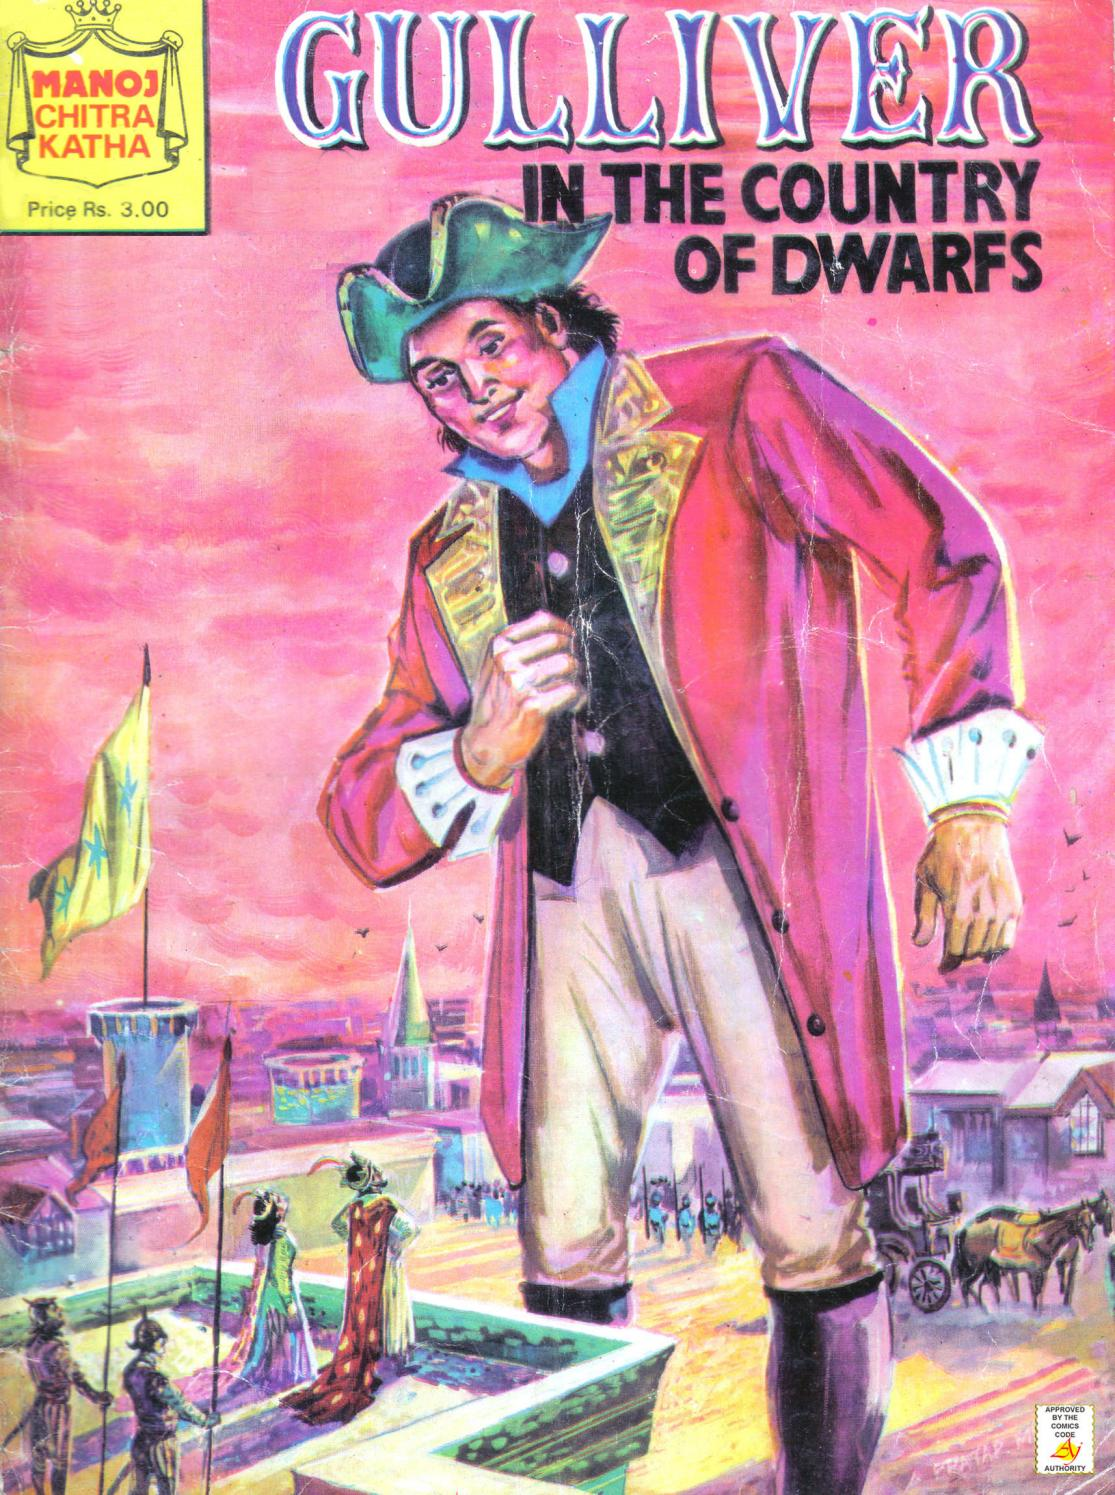 Gulliver in the country of dwarfs manoj chitra katha cbz by